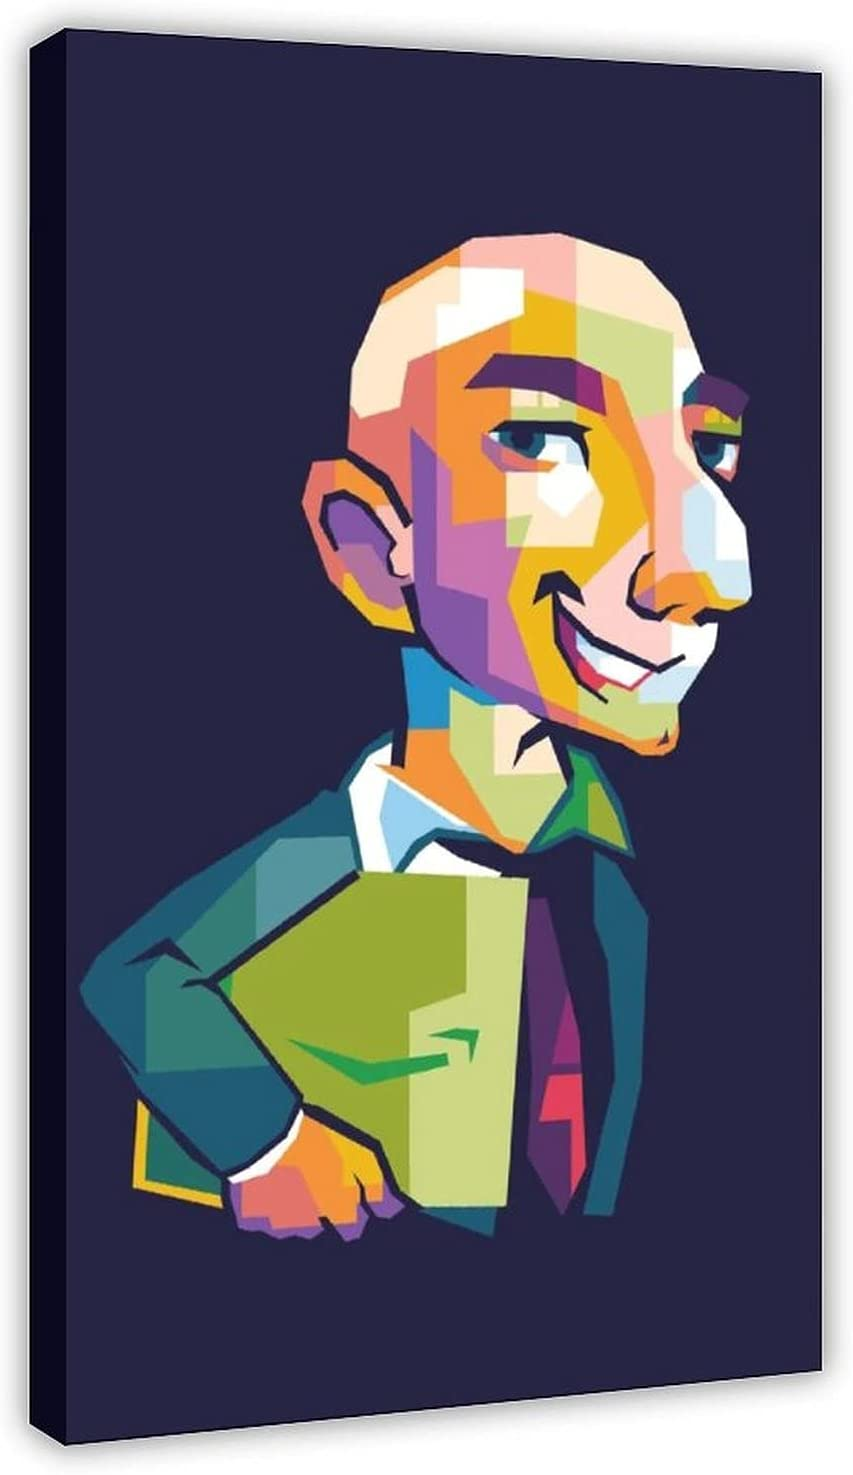 Brand new Richest Jeff Bezos Vertical Poster Room Wall Poste Aesthetic For Houston Mall